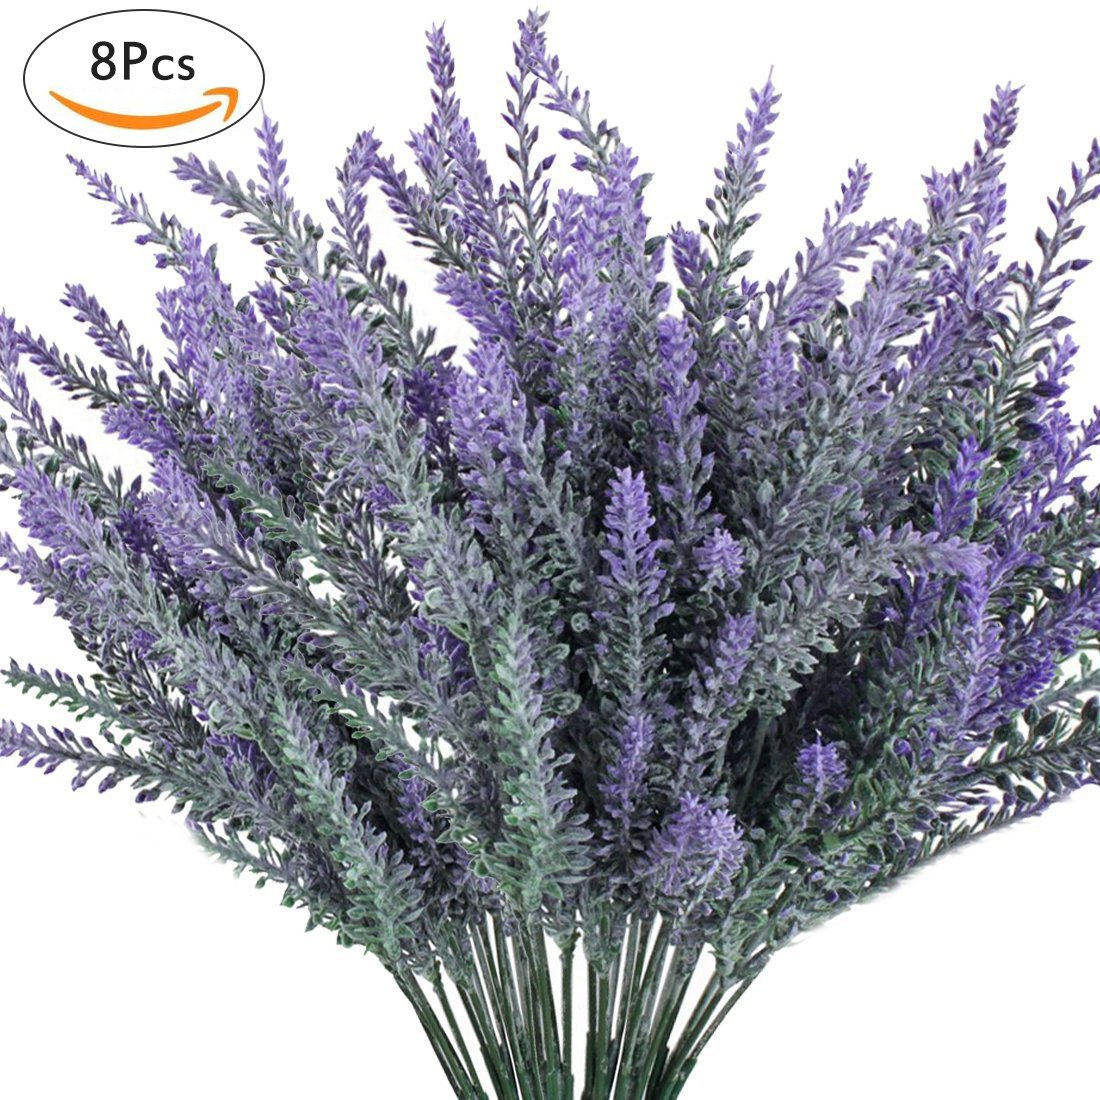 Luyue 8PCS Artificial Lavender Flowers Bouquet Fake Lavender Plant Bundle for Wedding Home Decor Garden Patio Decoration